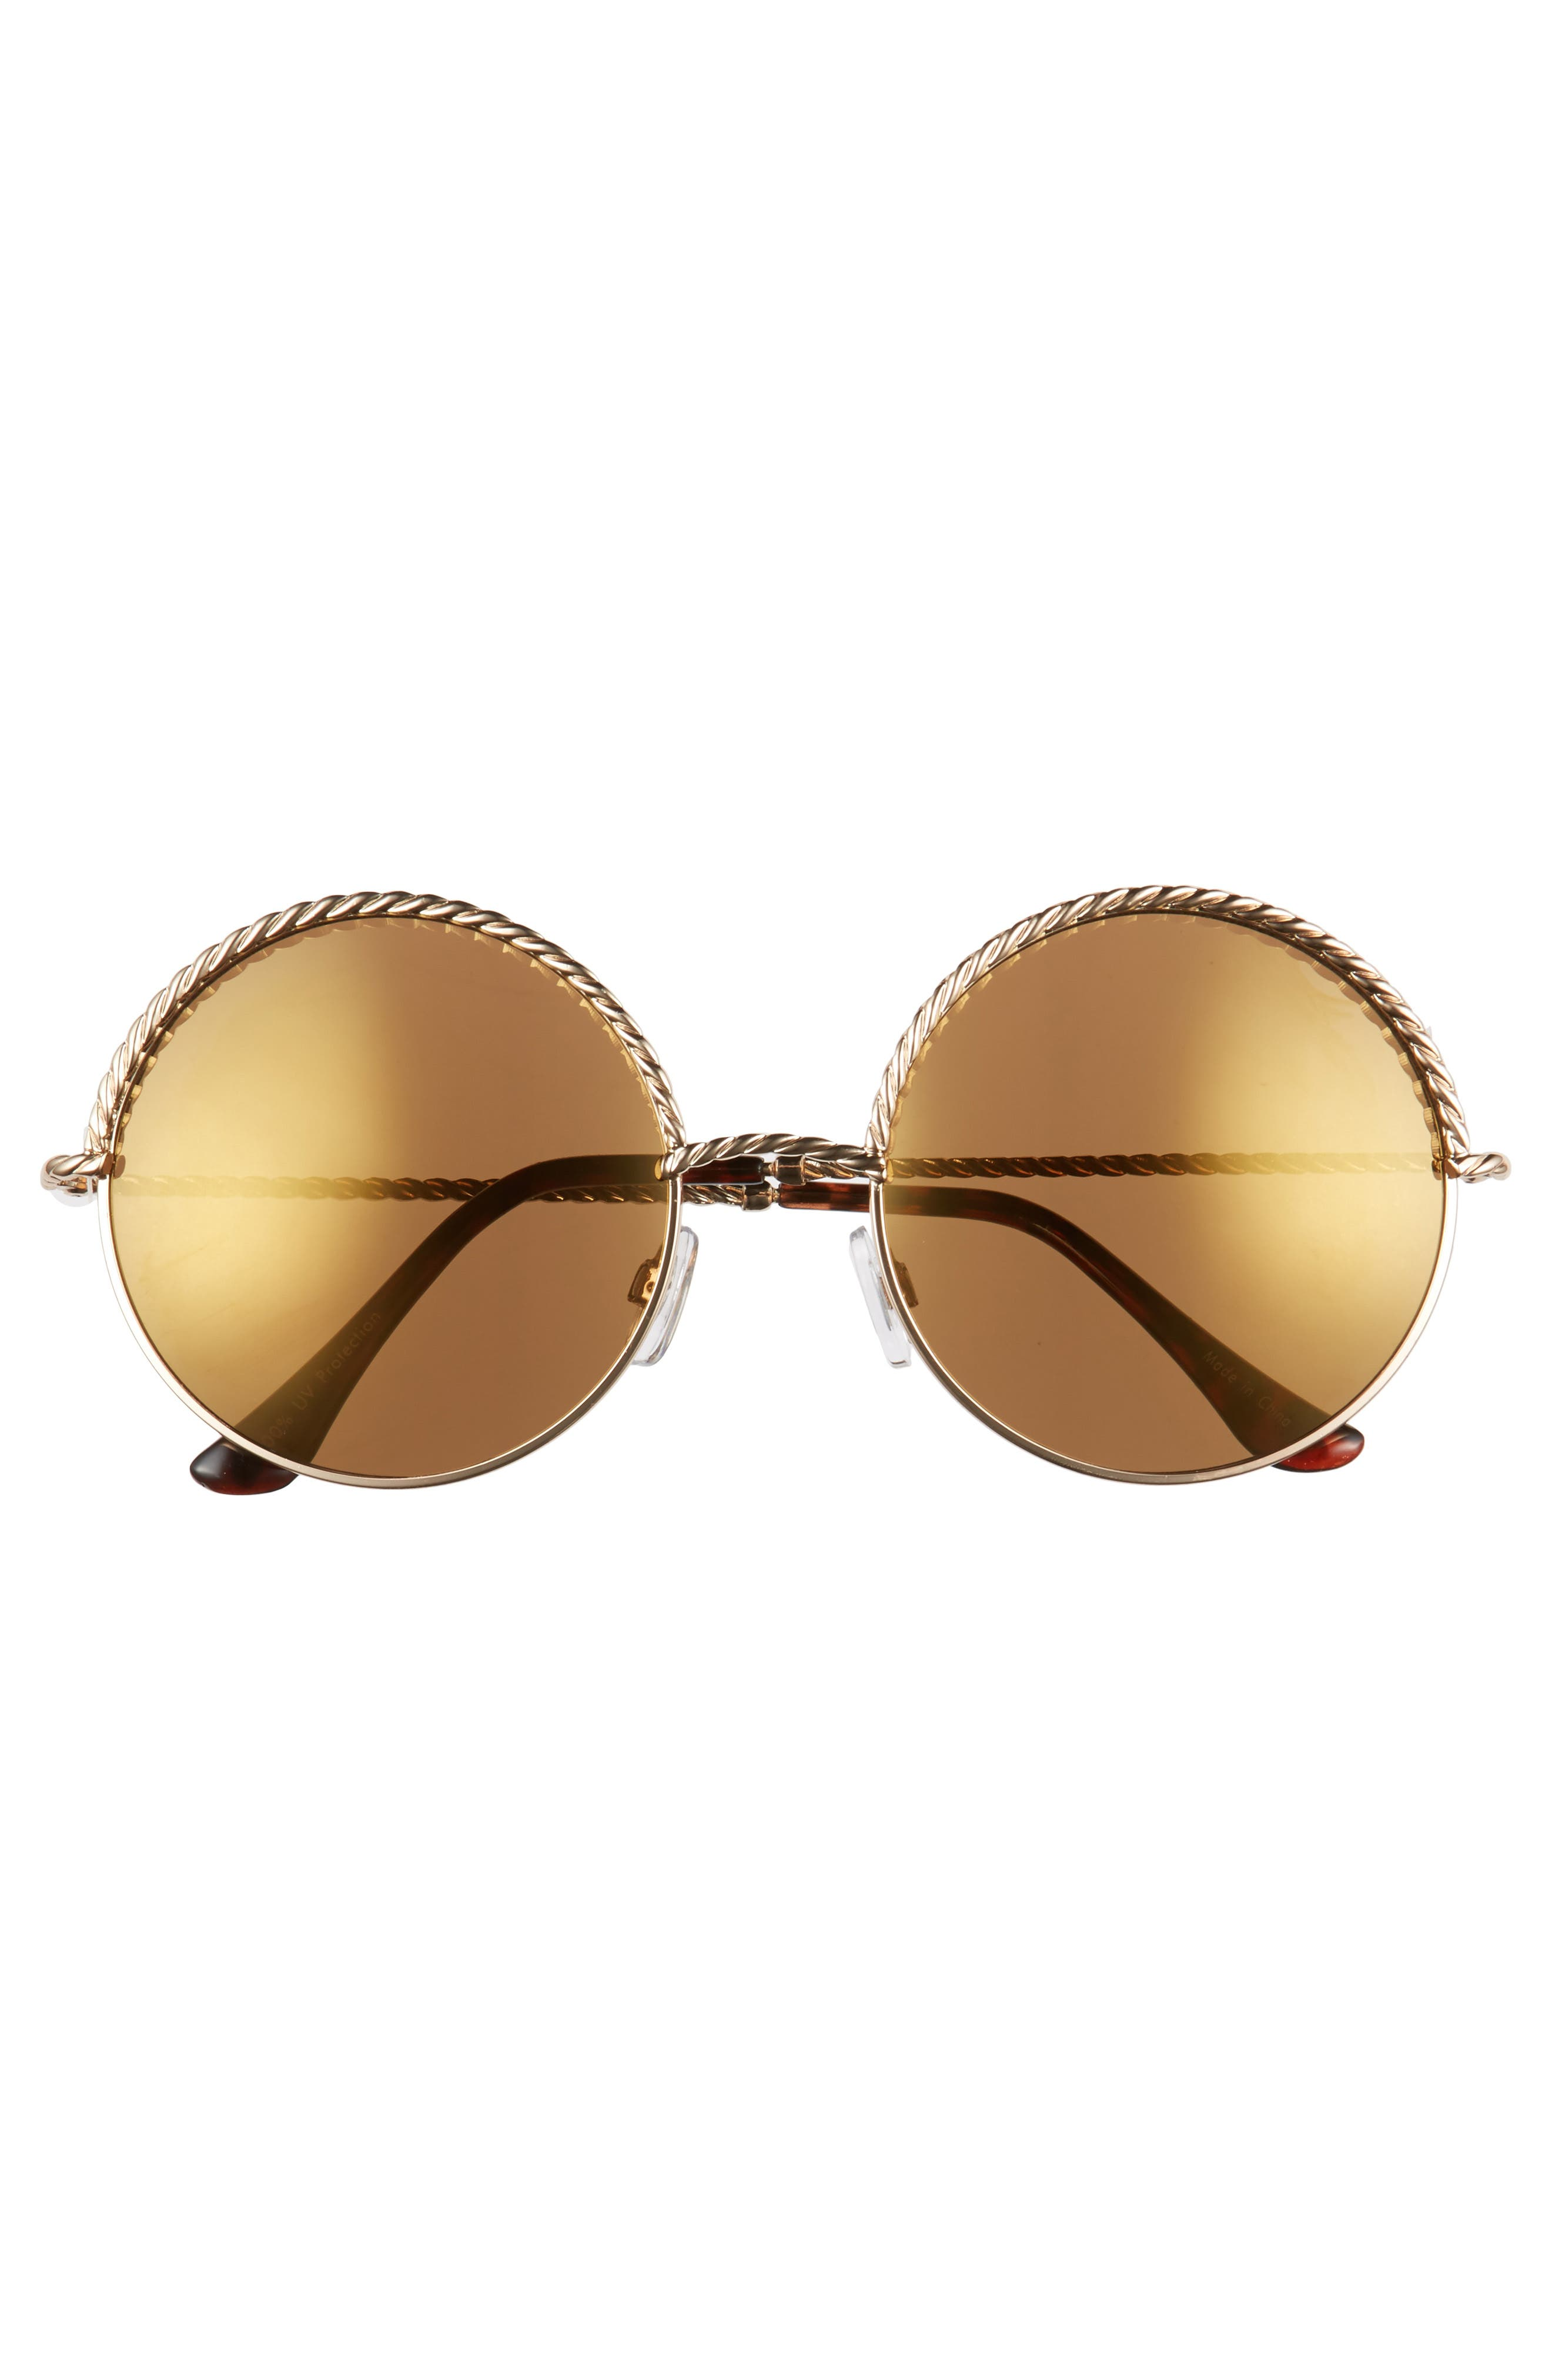 58mm Chain Trim Round Sunglasses,                             Alternate thumbnail 2, color,                             Gold/ Brown